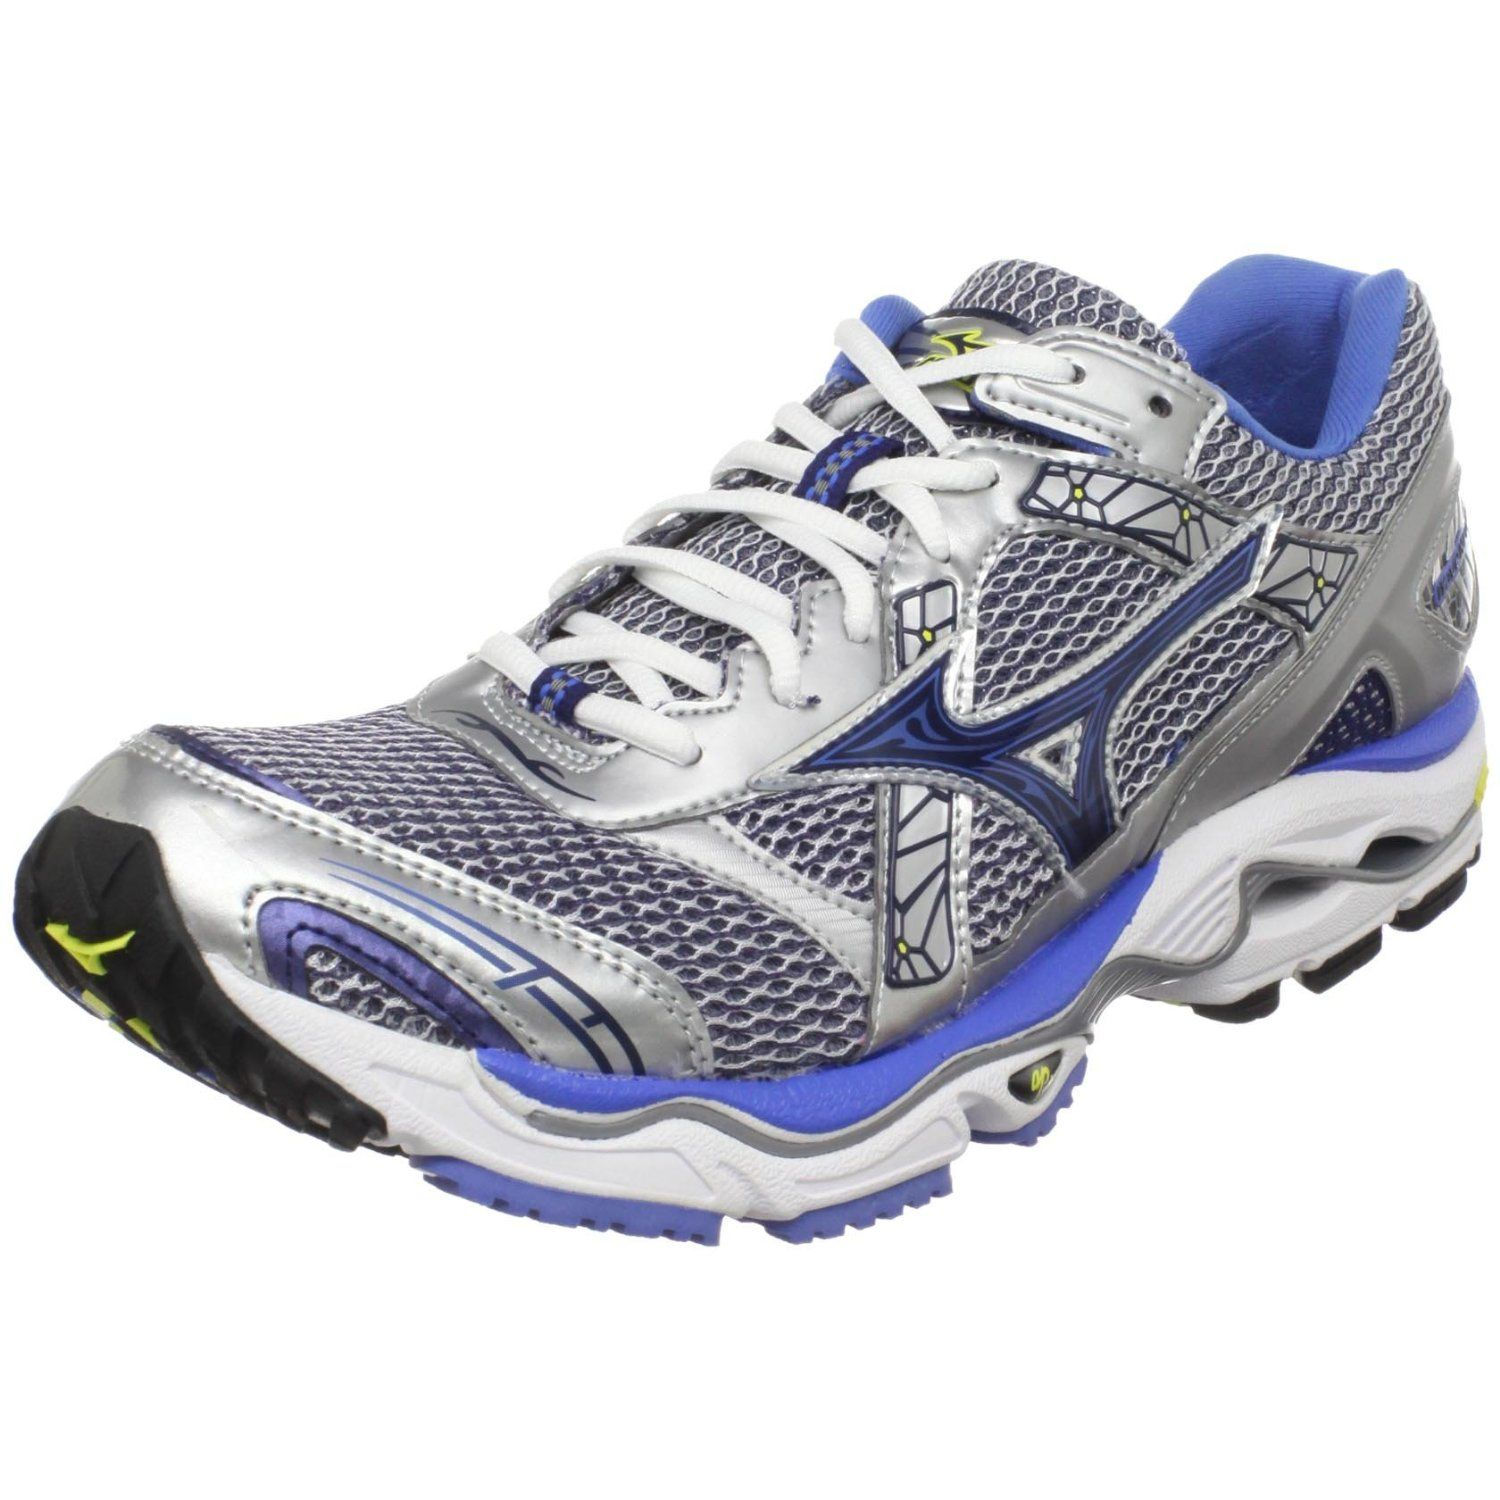 d0bde698691d5 Mizuno Women's Wave Nirvana 7 Running Shoe, (mizuno, running shoes ...